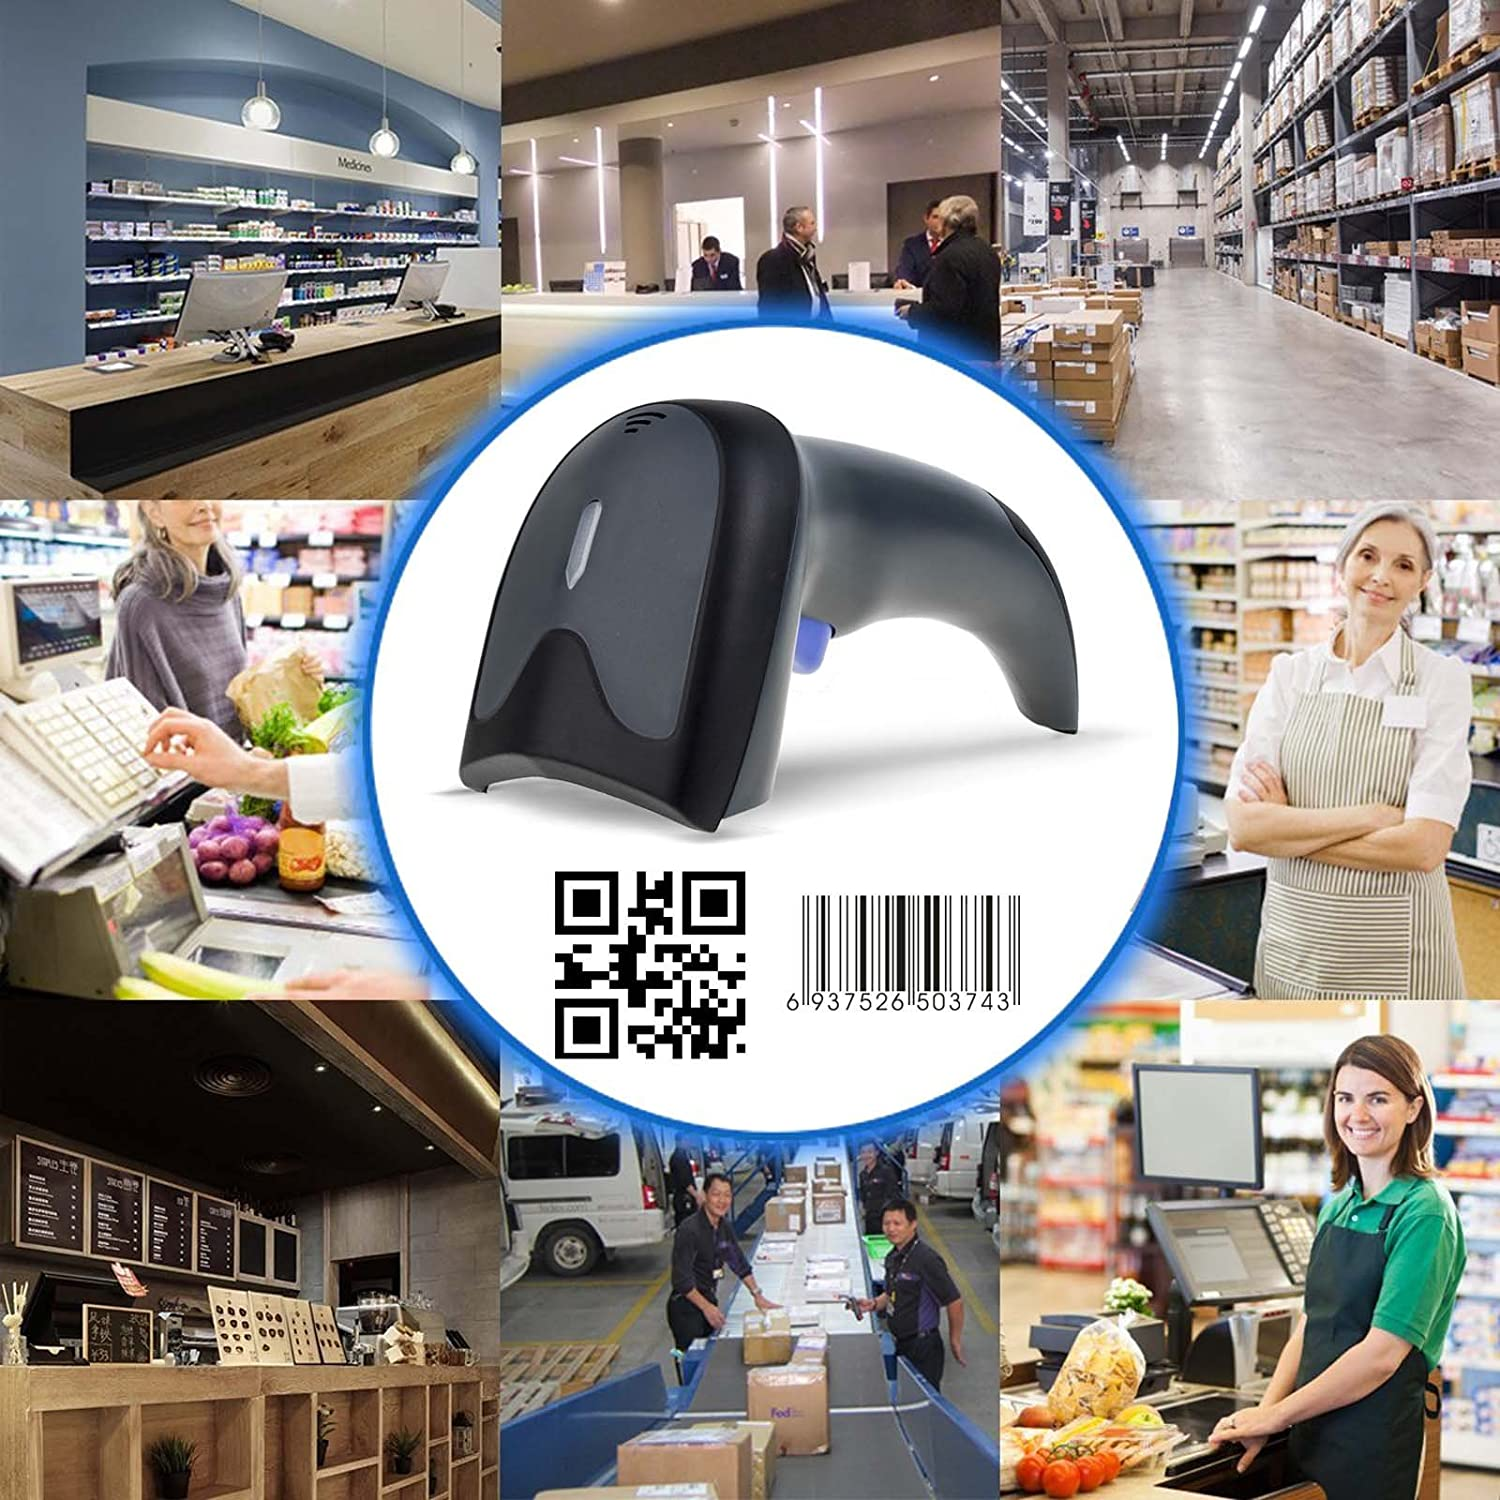 USB Automatic Barcode Scanner Scanning Barcode Bar-Code Reader Wireless 2.4GHz Handheld Cordless Bar-Code Reader USB Rechargeable Wireless//Wired for POS System 2D//1D 2.4Ghz Wired/&Wireless